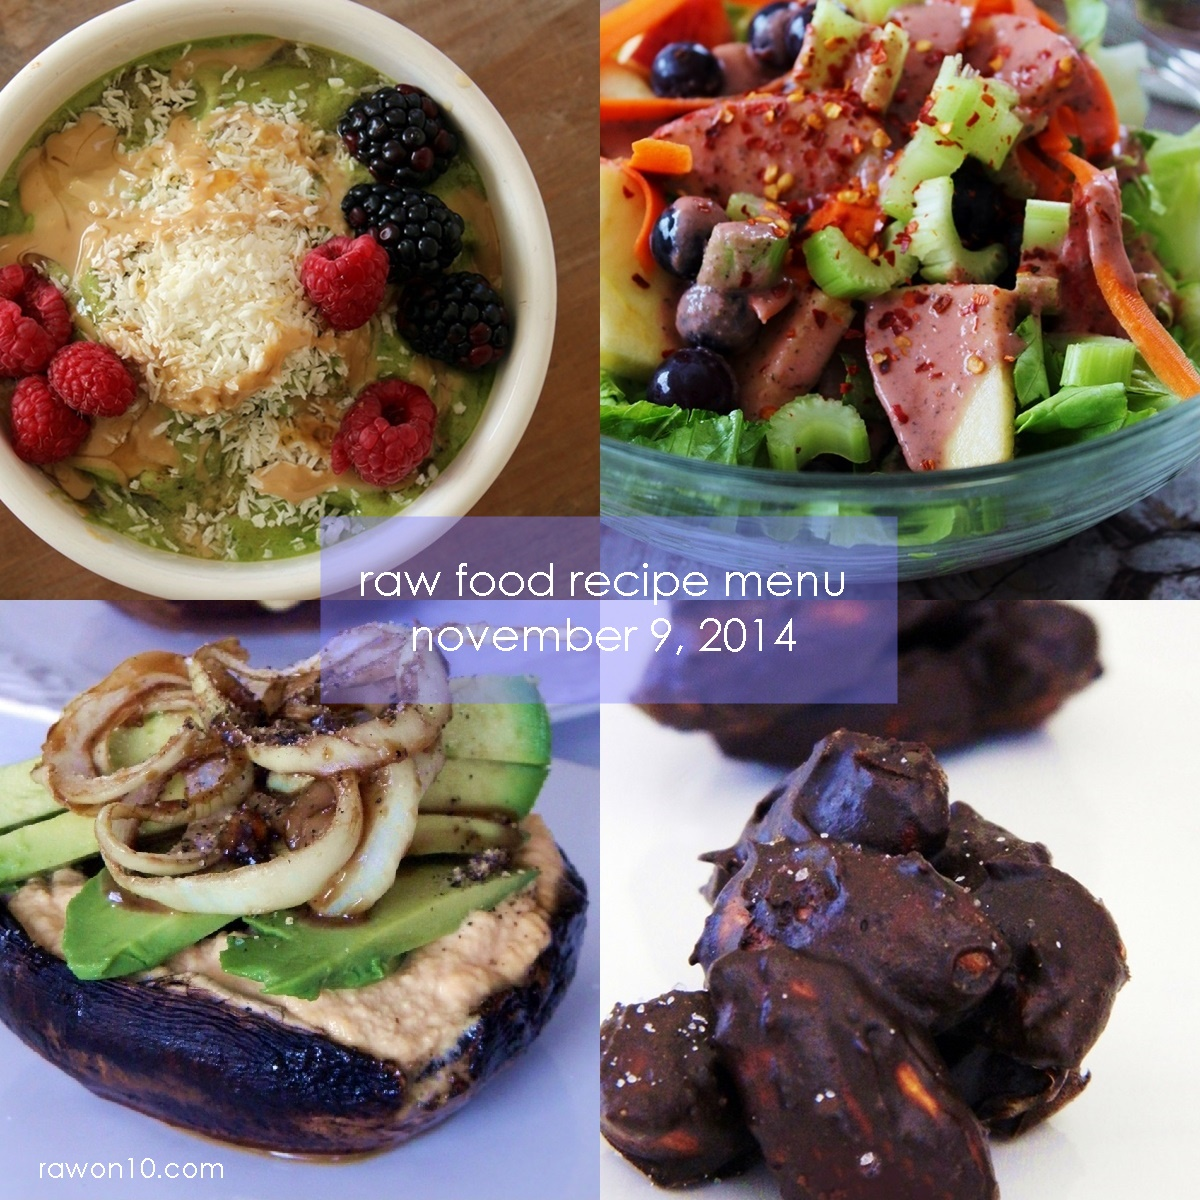 Raw on 10 a day or less raw food recipe menu november 9 2014 raw food recipe menu november 9 2014 breakfast forumfinder